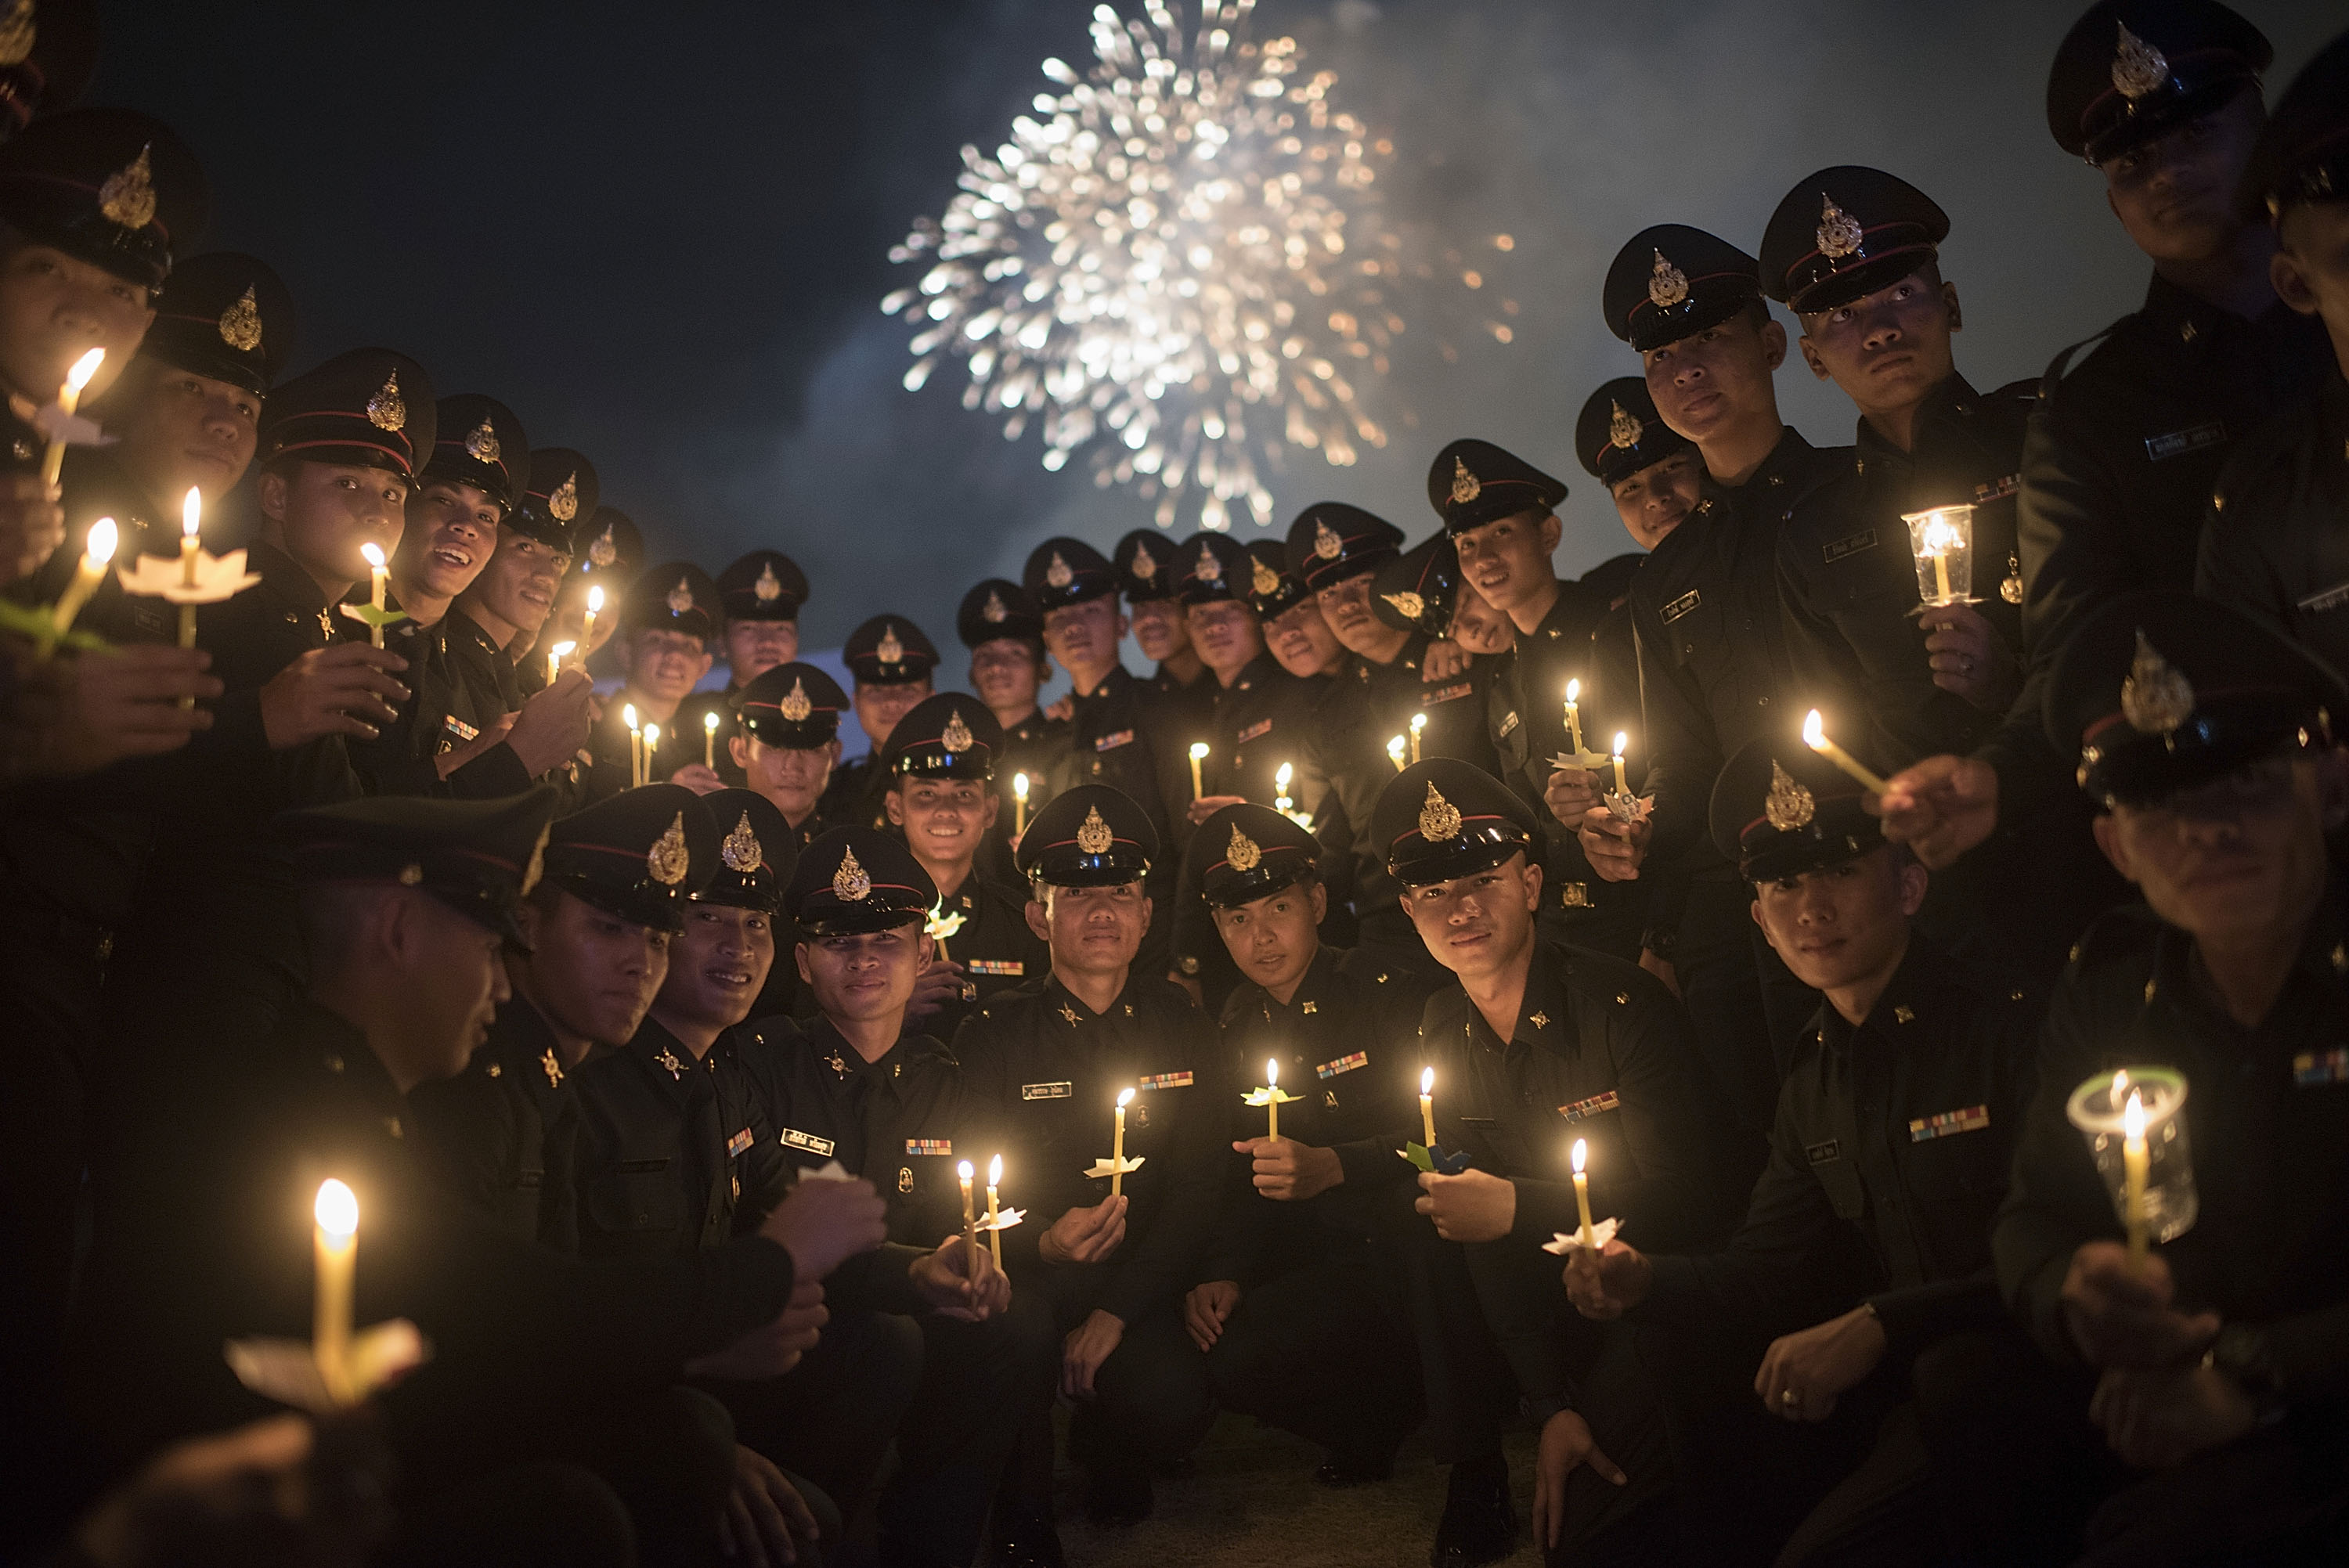 Thai policemen pose for a picture during a massive candle light ceremony for King Bhumibol Adulyadej's birthday at Sanam Luang in Bangkok, on Dec. 5, 2015.